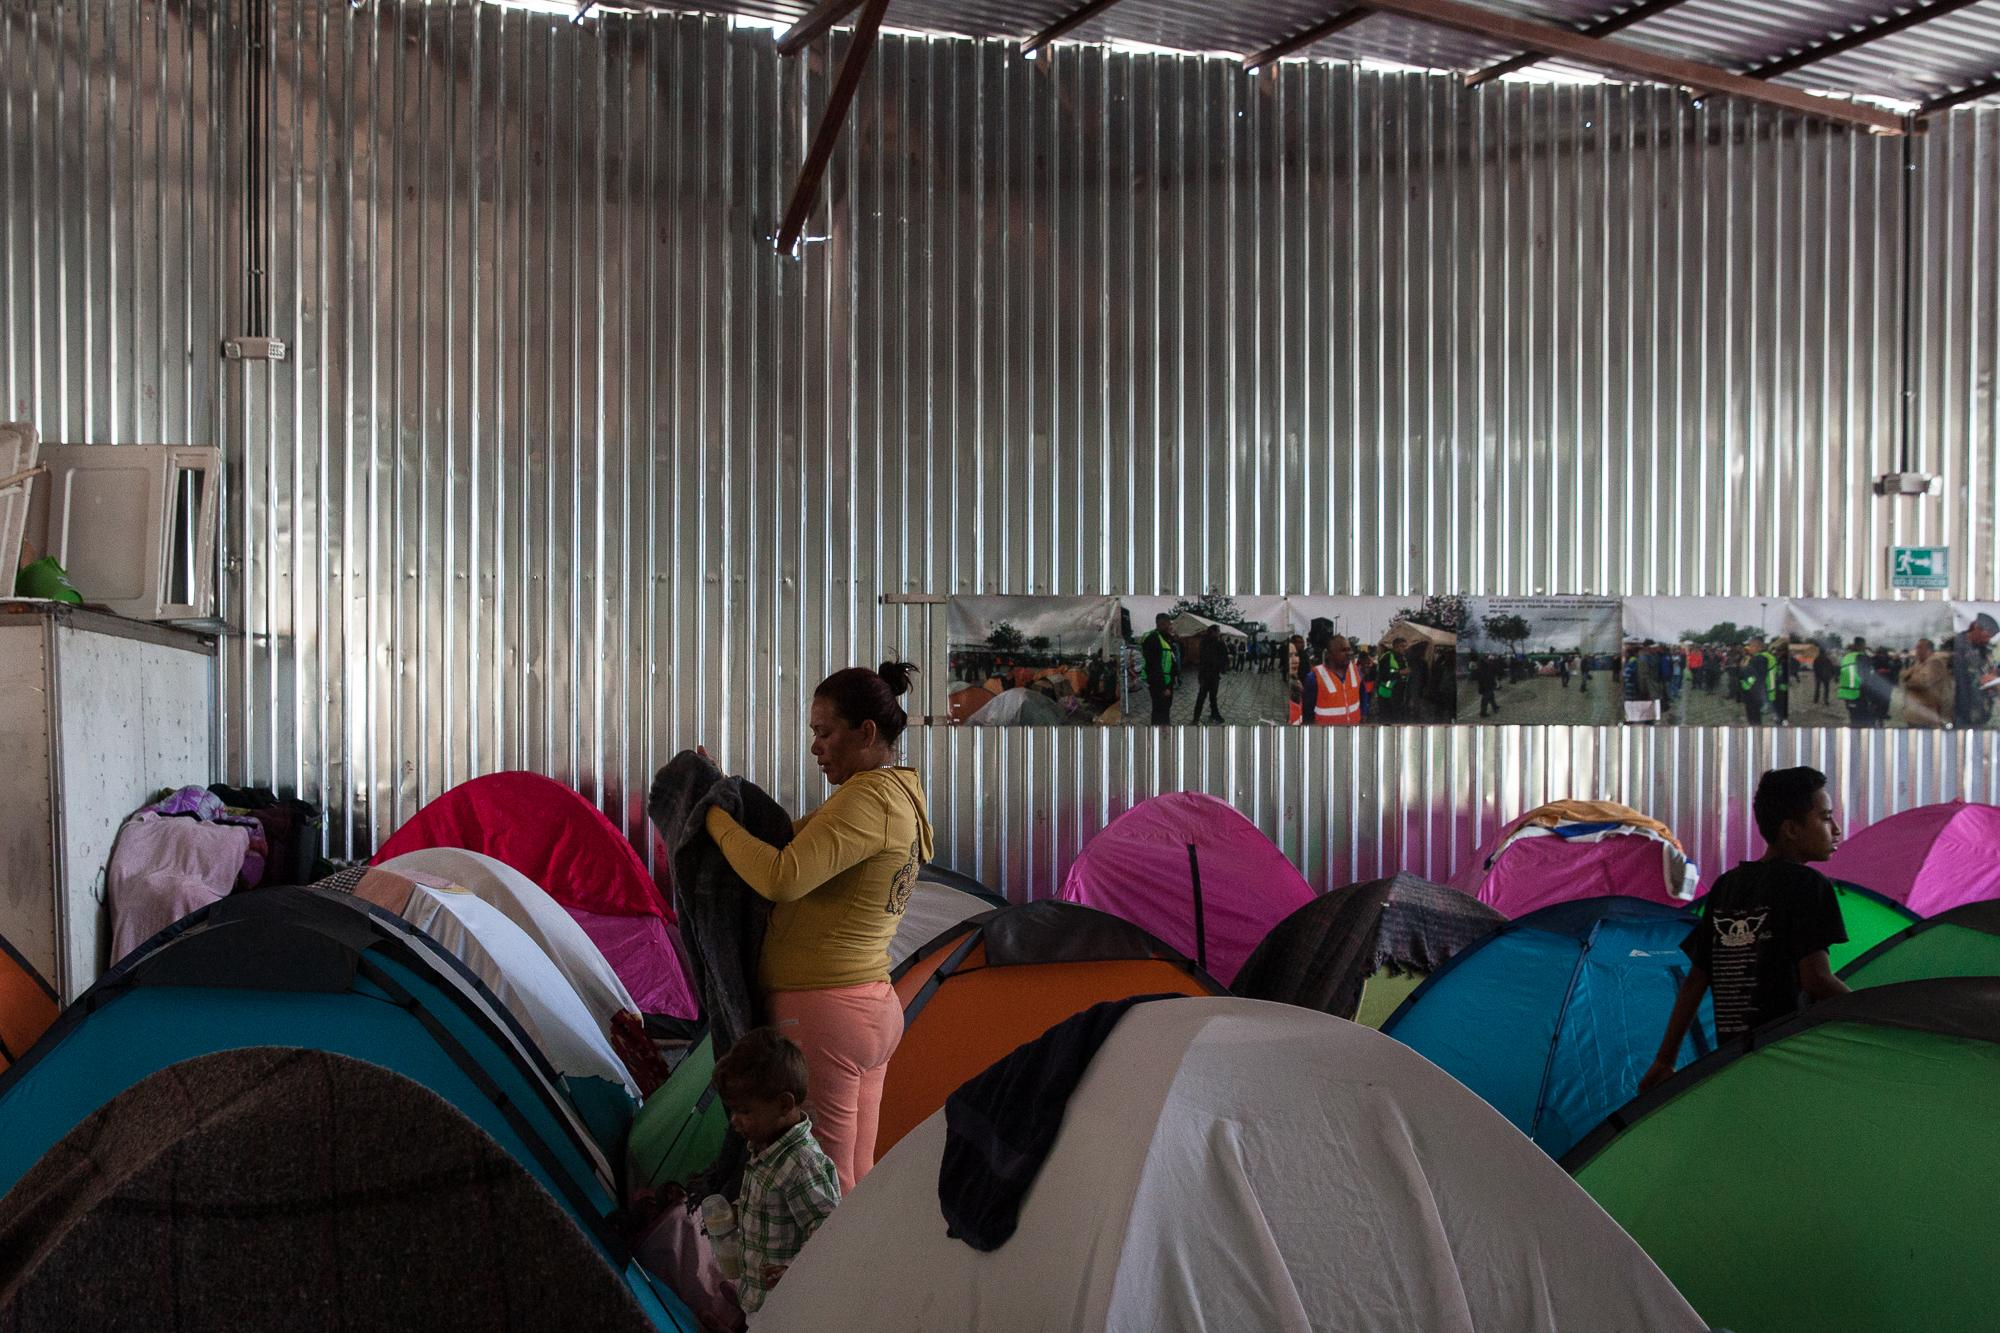 The Juventud 2000 migrant shelter located on the edge of Tijuana's red-light district is filled with colorful tents to accommodate about   200 arrivals.  People start to wake up on April 25, 2018.